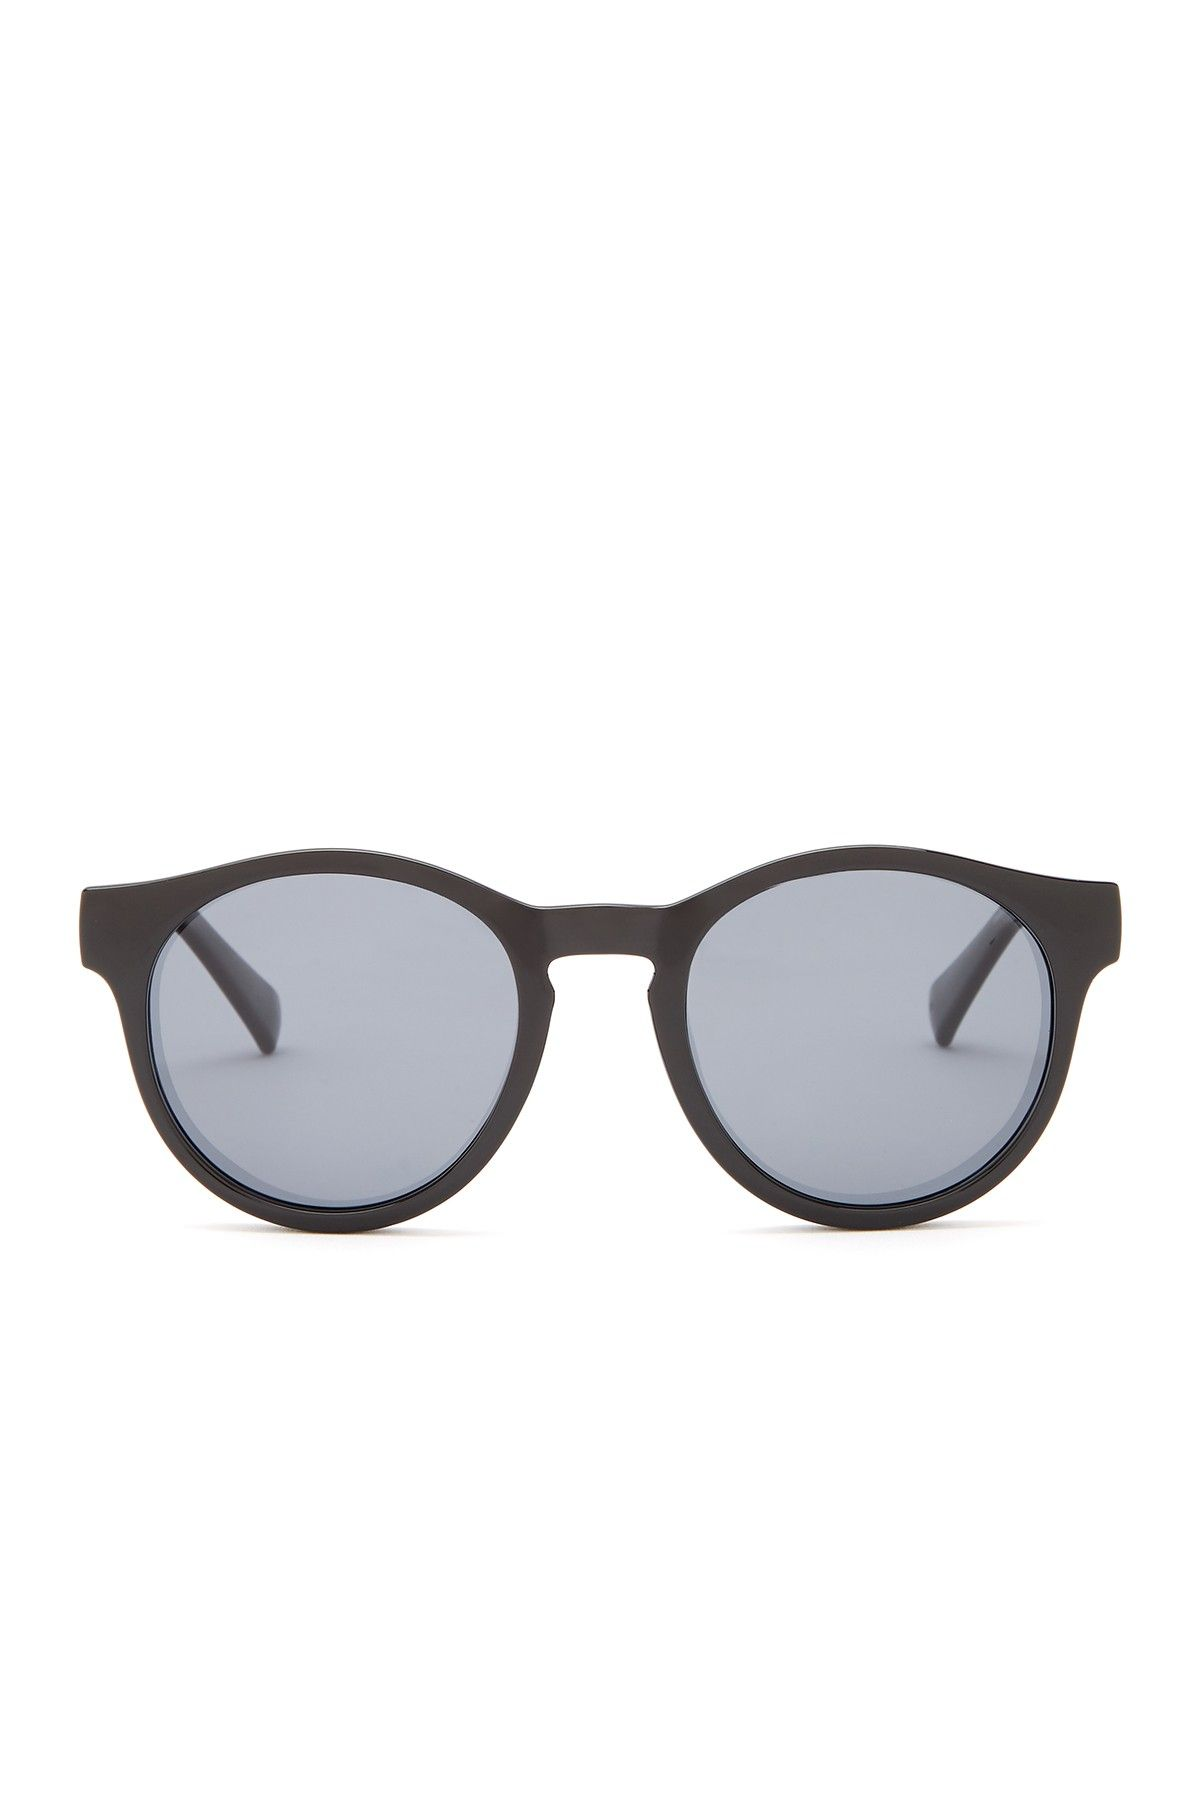 b73ea840d Cole Haan   Schoolboy 50mm Round Sunglasses   Products   Sunglasses ...